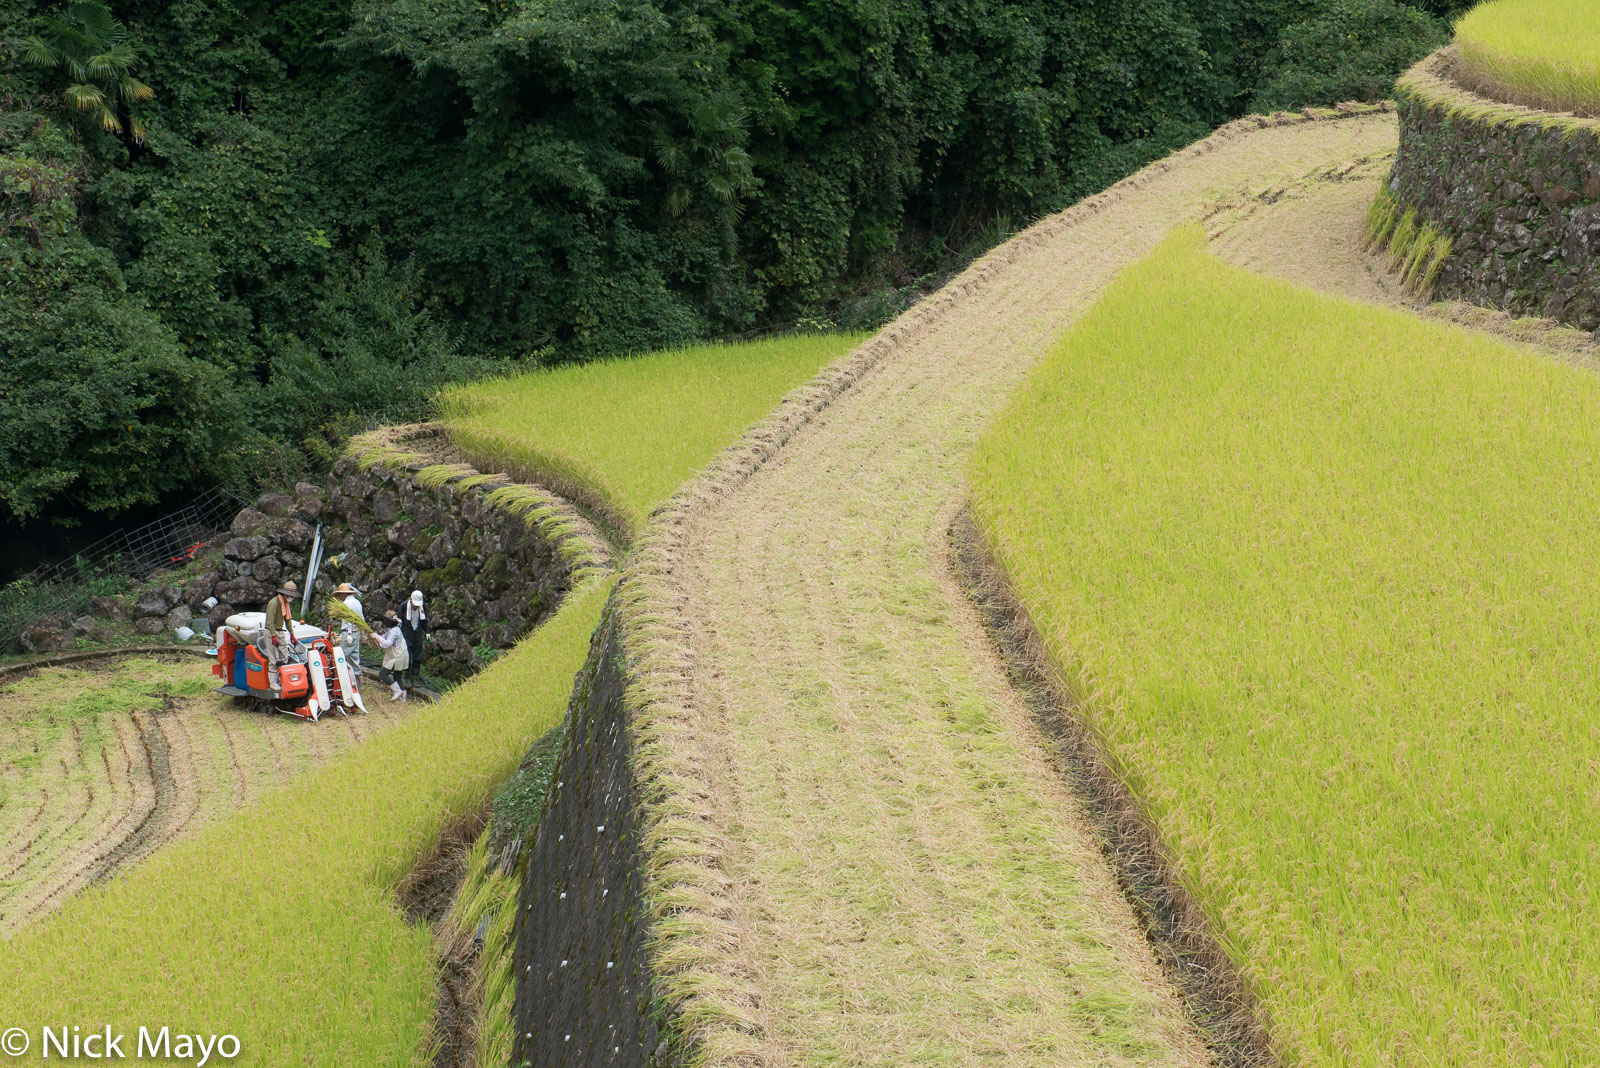 Farmers harvesting paddy rice at Warabino.